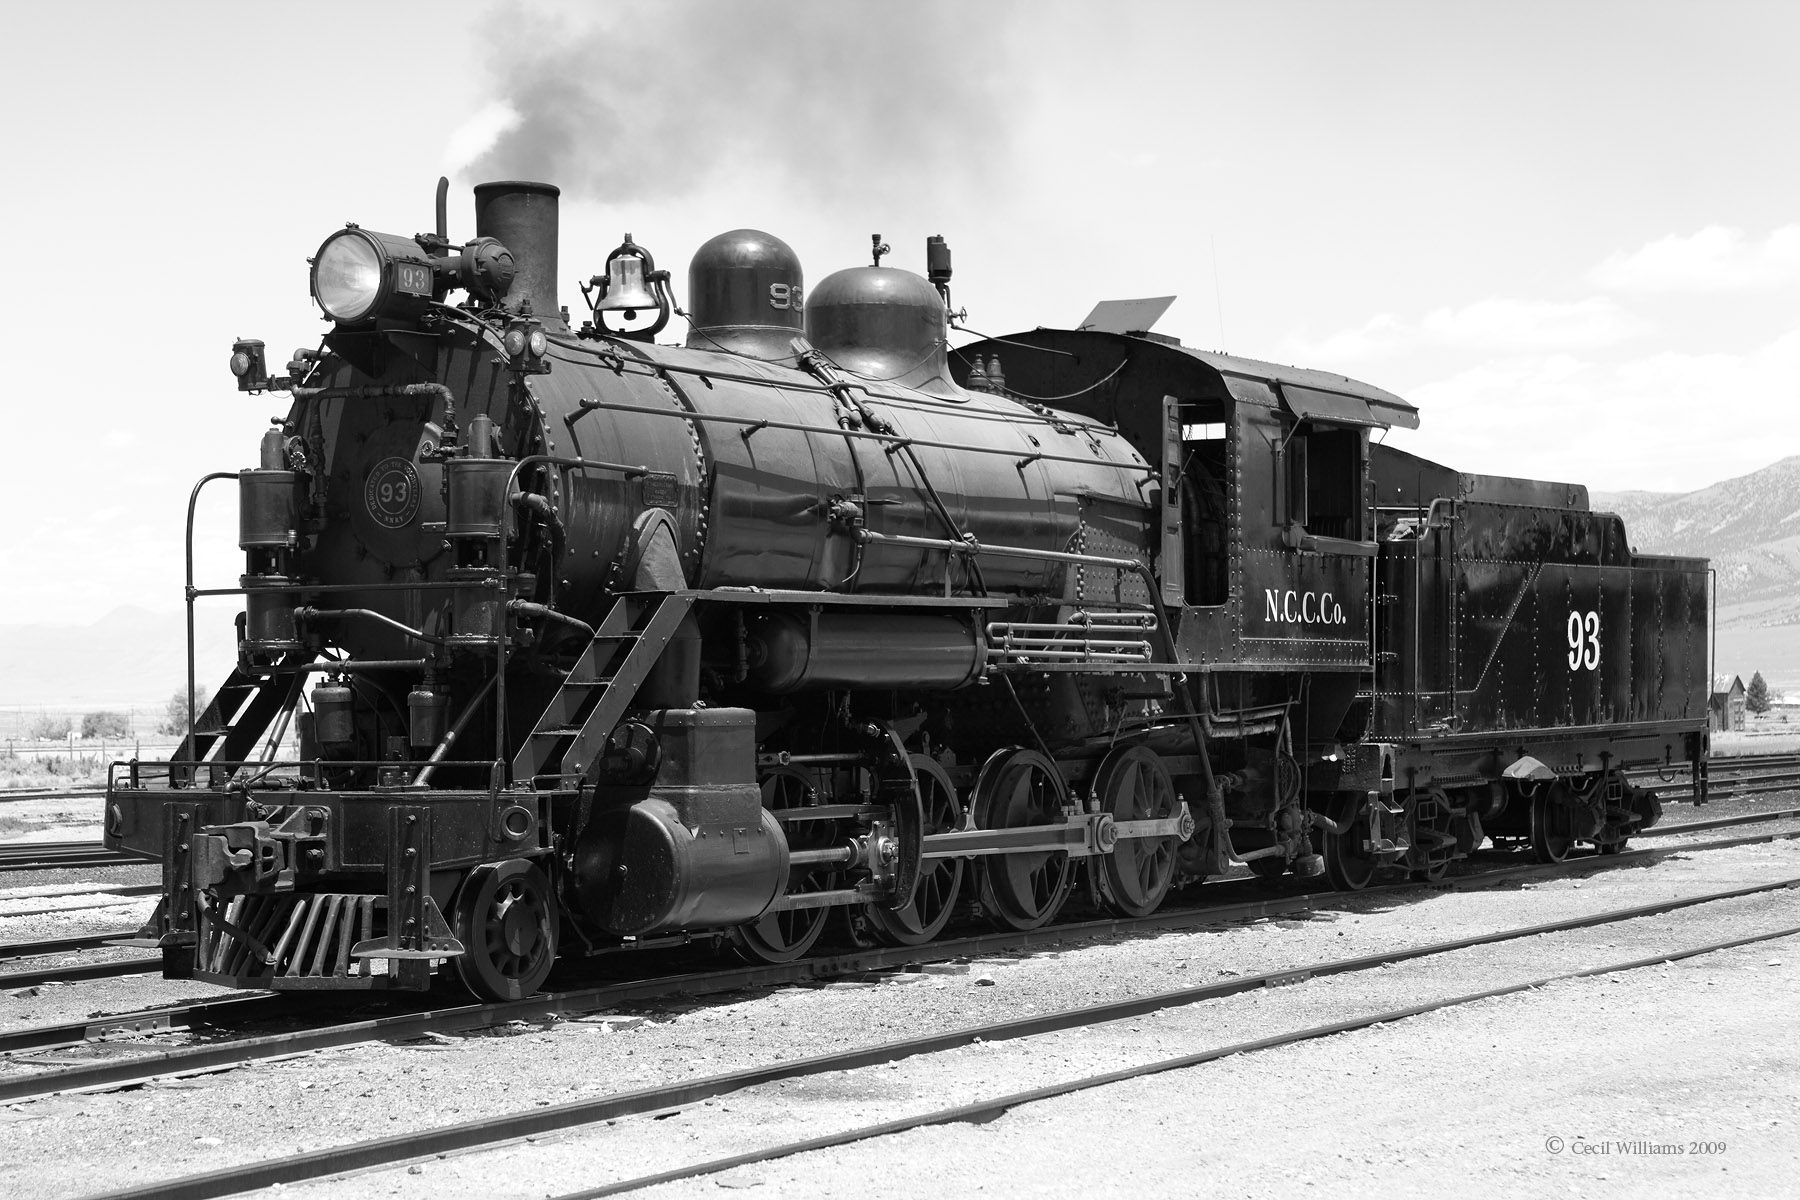 http://lounge.obviousmag.org/encruzilhada/2012/06/15/1299_steam_engine_bw_001.jpg